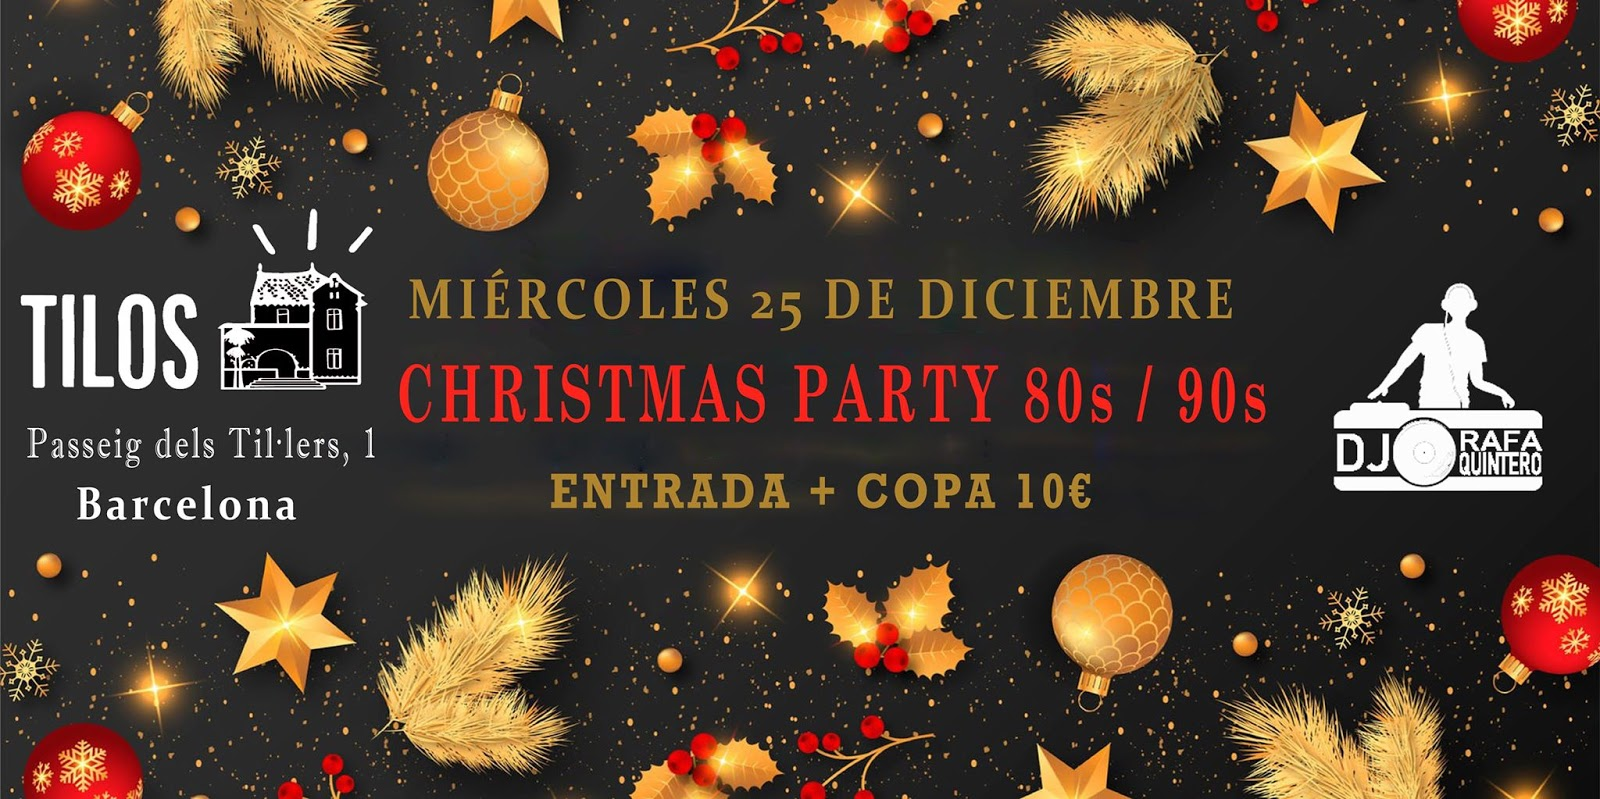 Flyer Christmas Party 80s / 90s